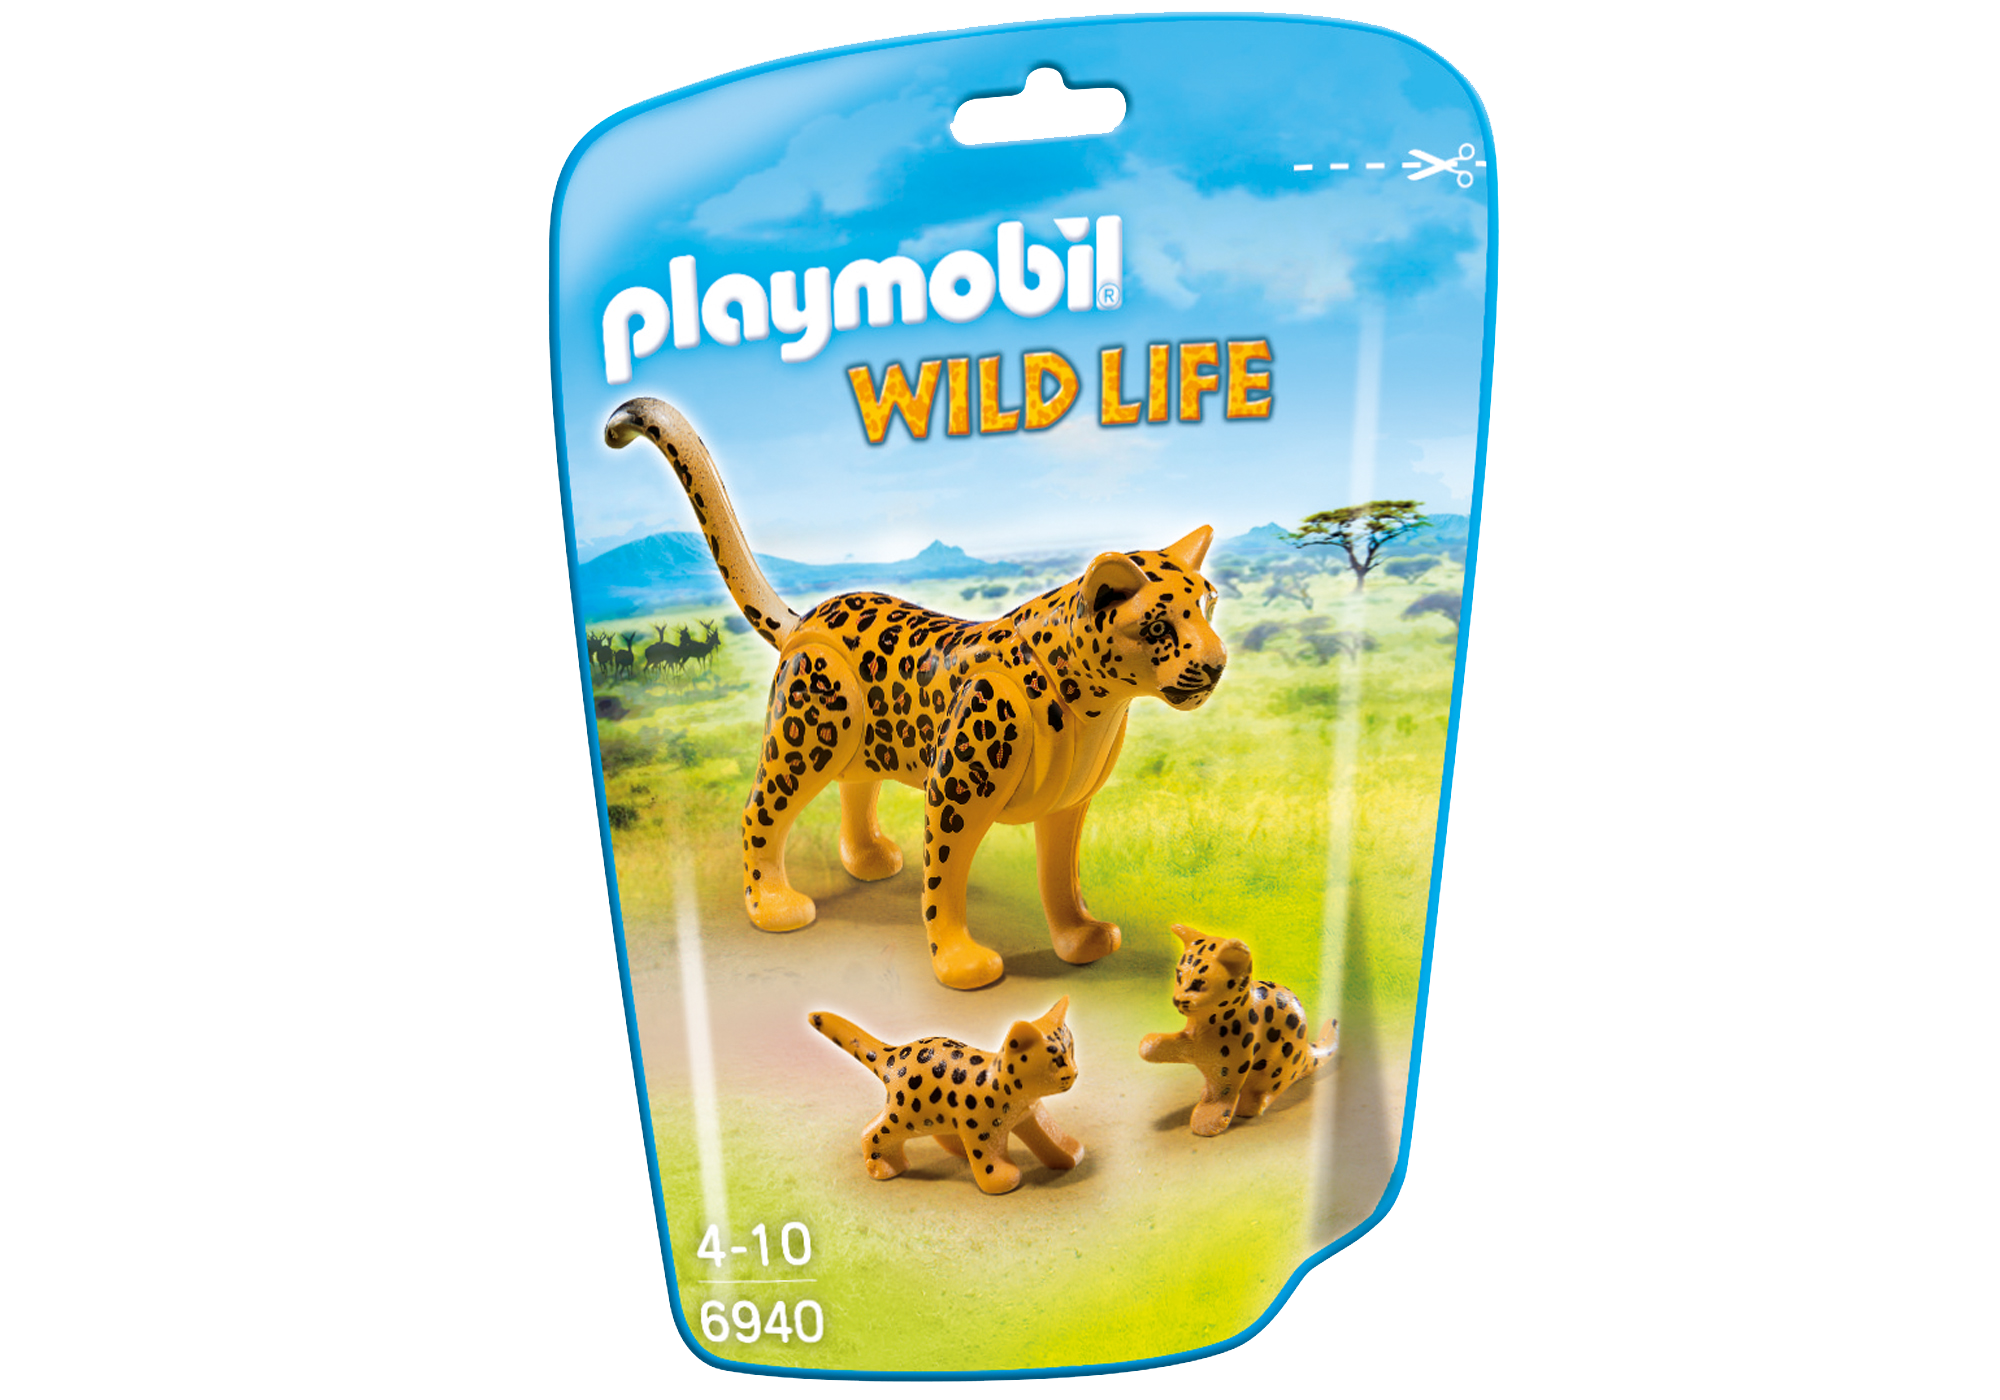 http://media.playmobil.com/i/playmobil/6940_product_box_front